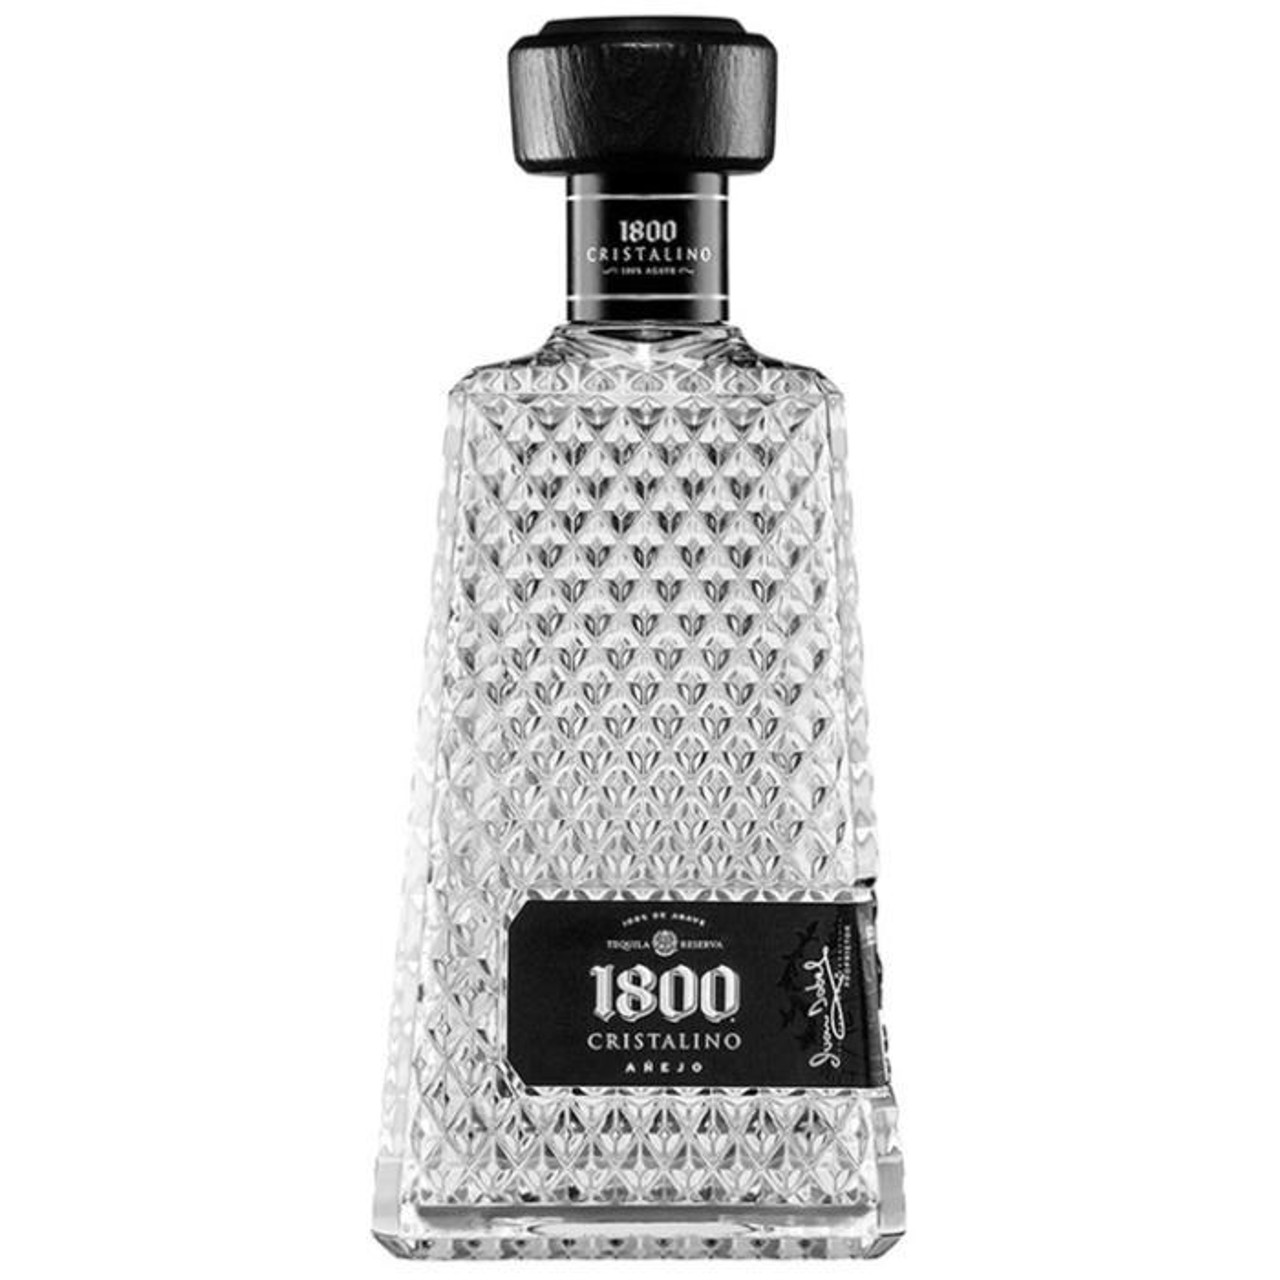 "In celebration of the year in which real tequila was born, 1800 tequila introduces a beautiful new Cristalino ""Cleared aged"" tequila. 1800 Cristalino starts with premium Anejo made from 100% blue agave harvested and handpicked from their highland ranches in Jalisco, Western Mexico."